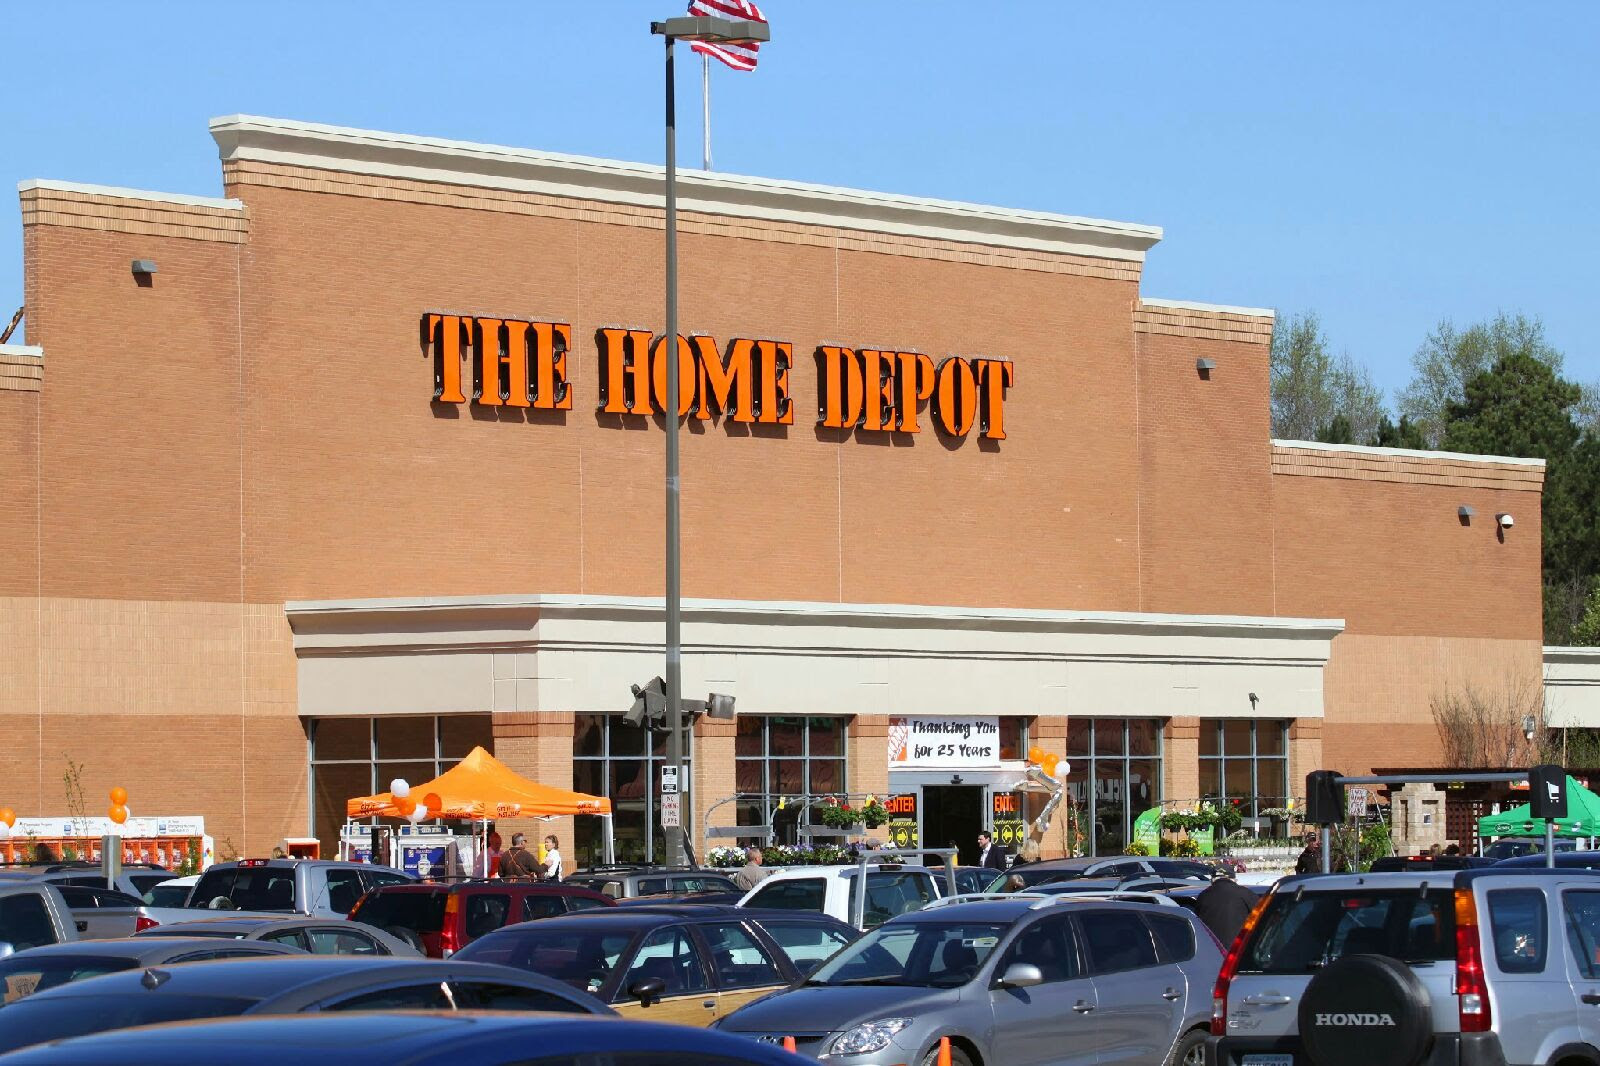 The Home Depot 4101 Roswell Rd Marietta, GA Home Depot - MapQuest